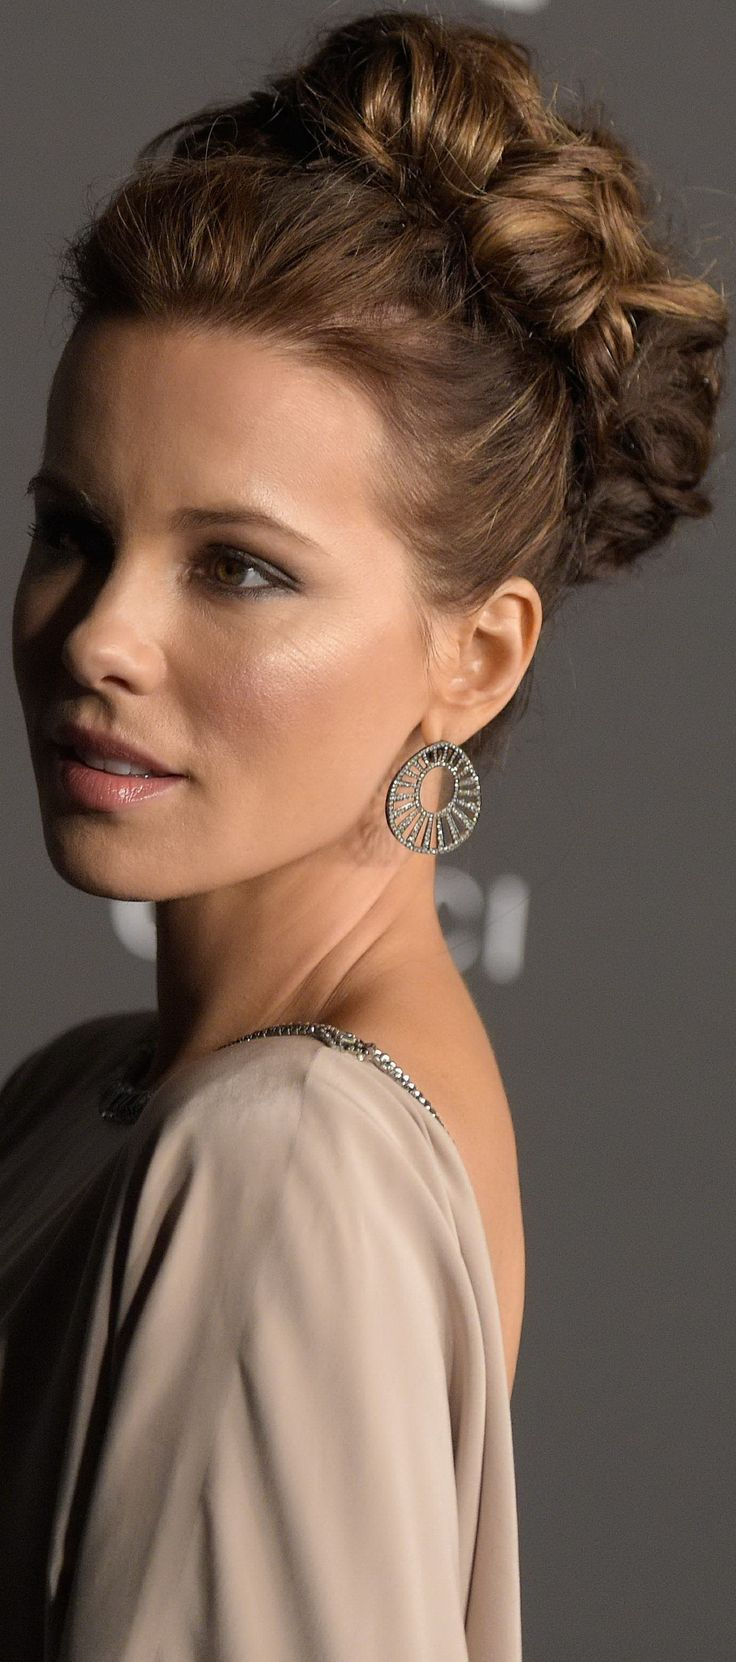 25+ best ideas about Kate Beckinsale on Pinterest | Kate ... Kate Beckinsale